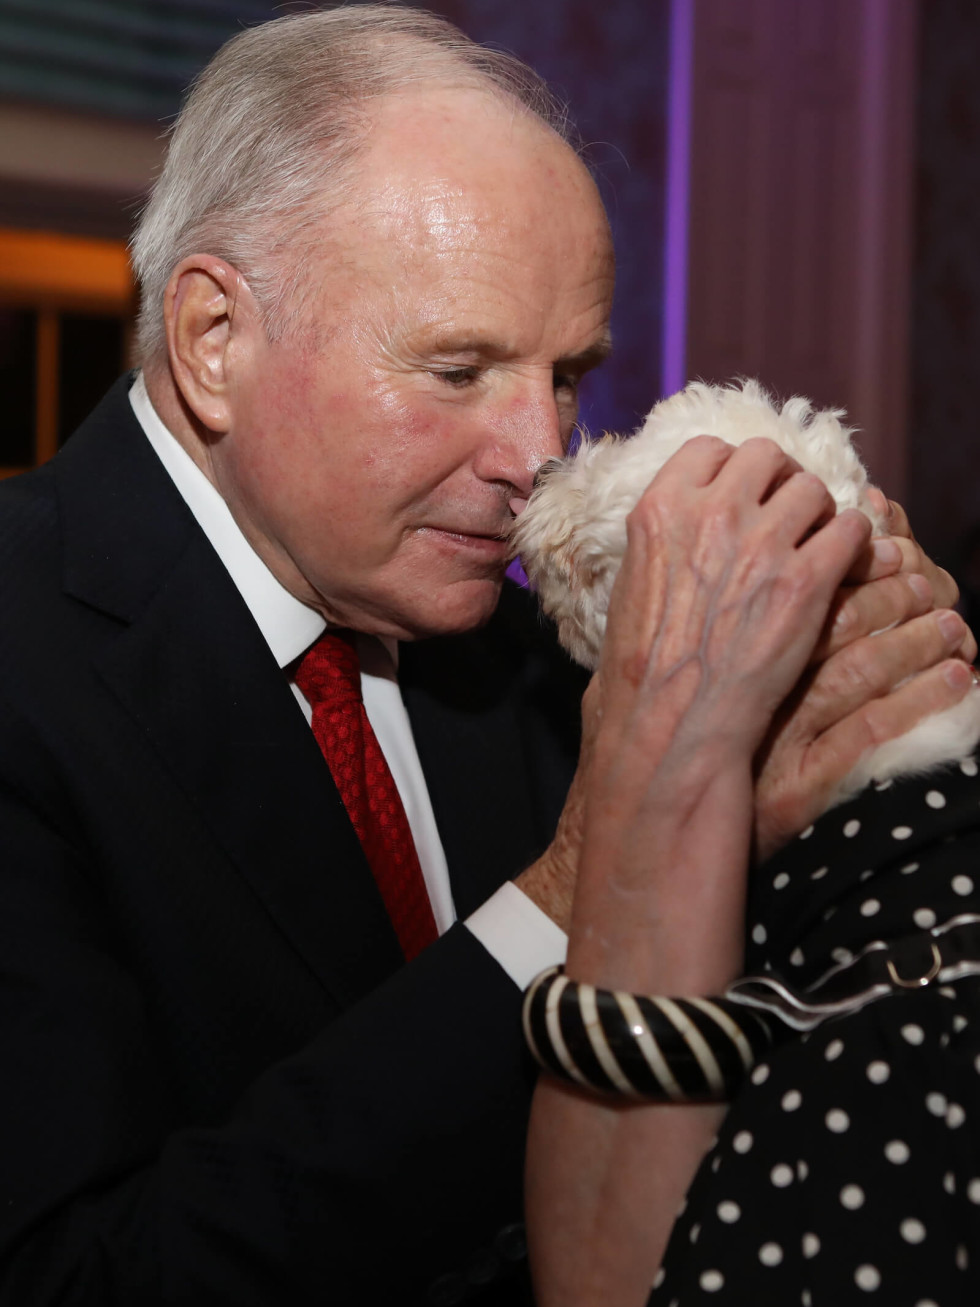 Don Sanders and Little Orphan Annie at BARC Gala